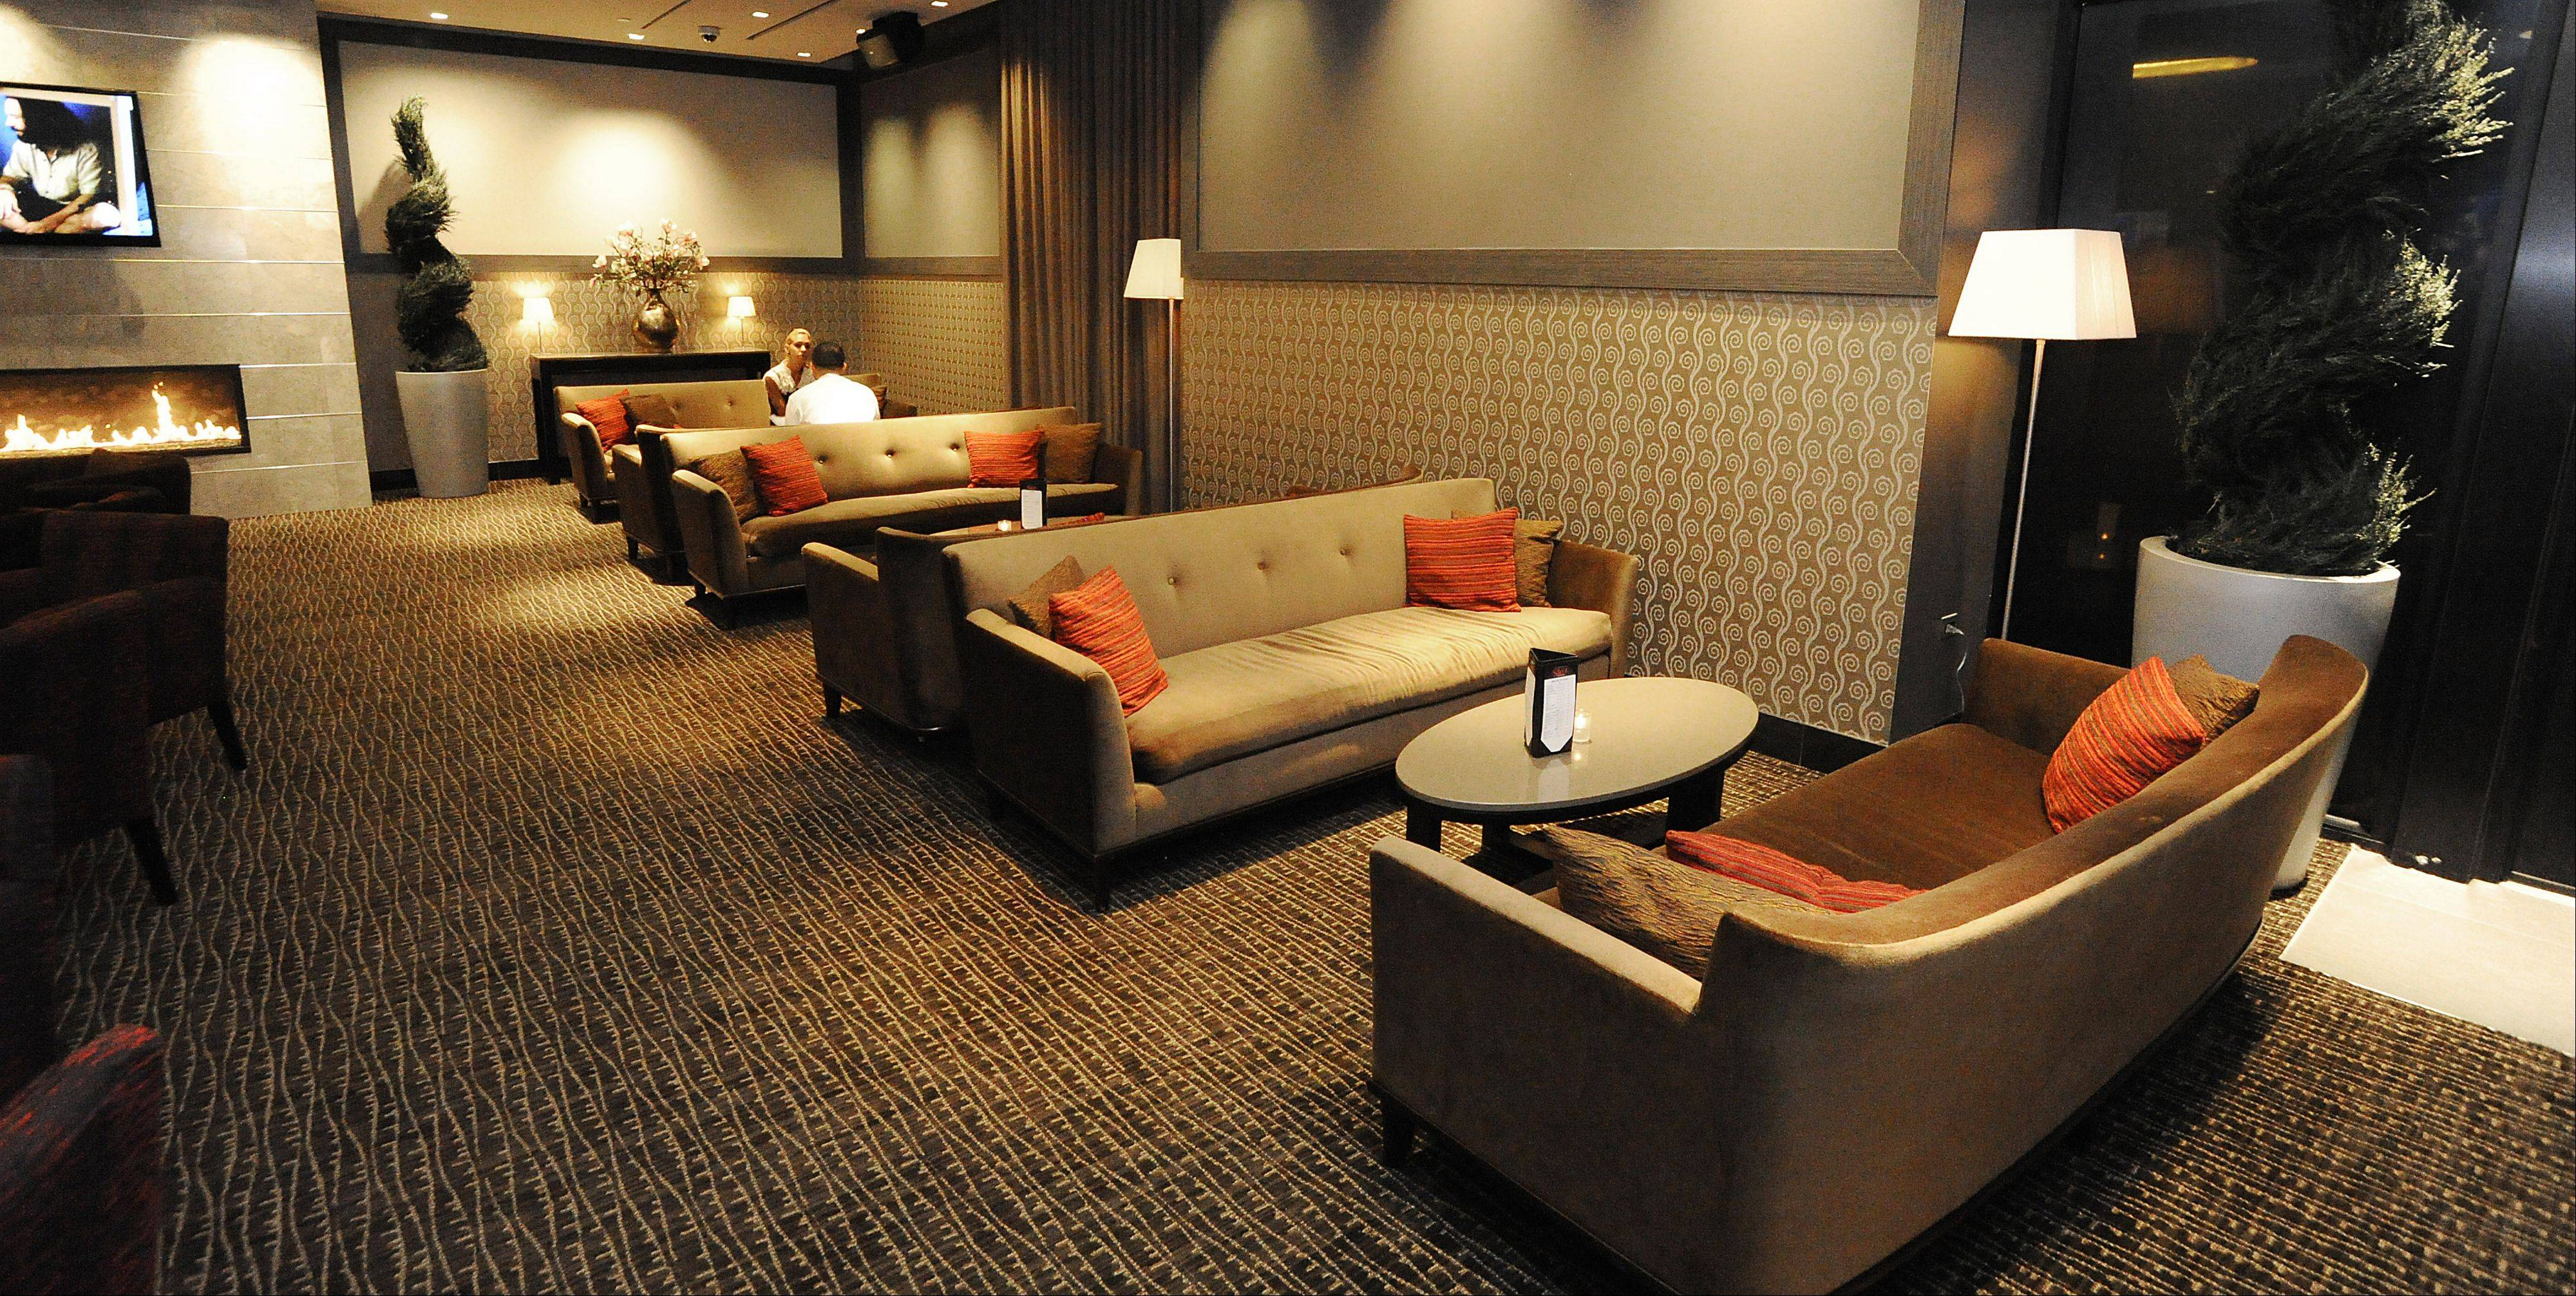 Relax with a drink before your movie feature starts at Salt Sports Bar, located inside the newly renovated iPic Theater in South Barrington.